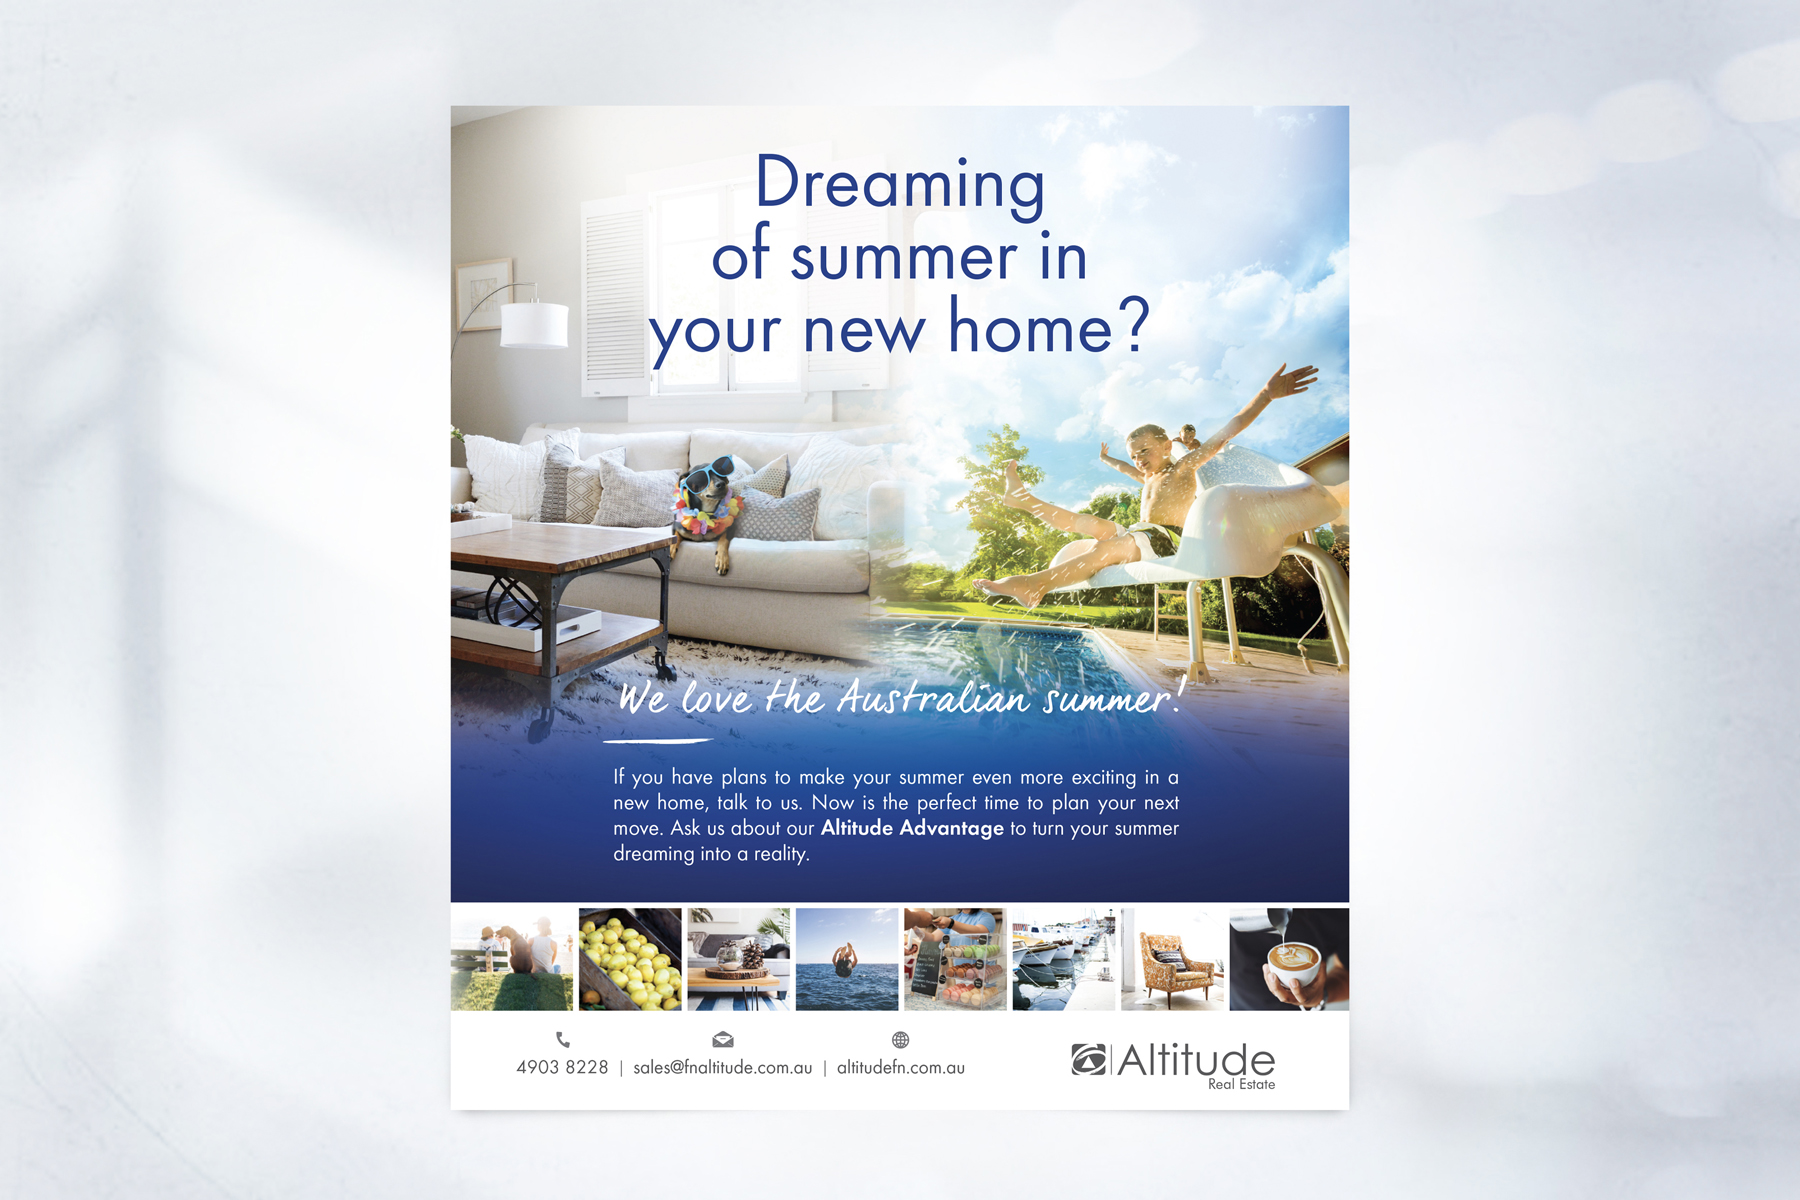 First National ALTITUDE Full Page Press Advertisement Dreaming of Summer